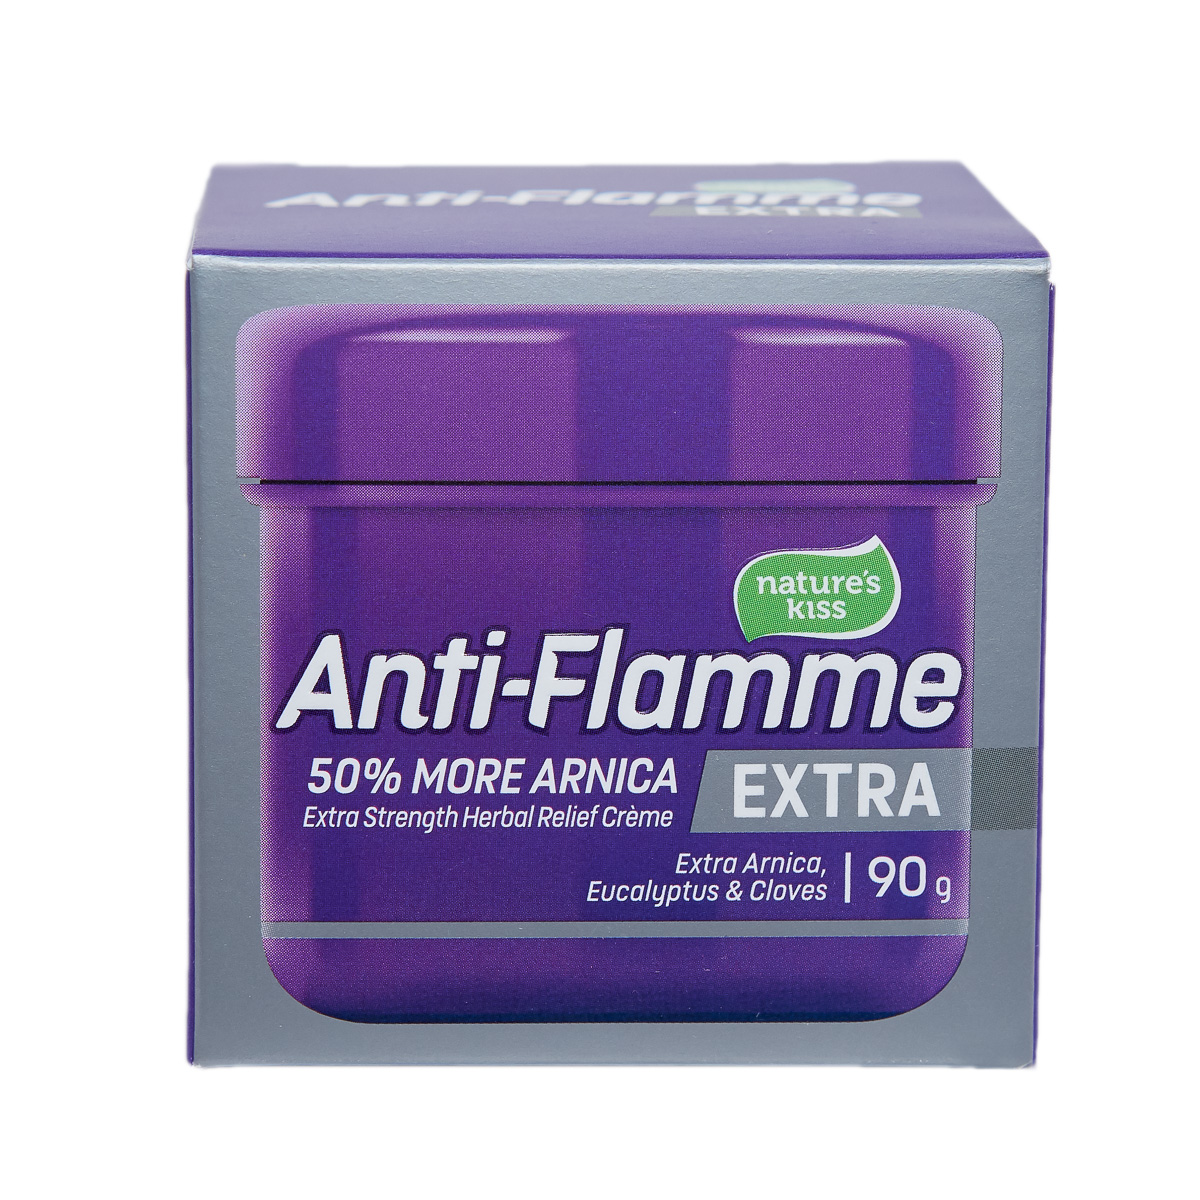 Nature's Kiss Anti-Flamme EXTRA